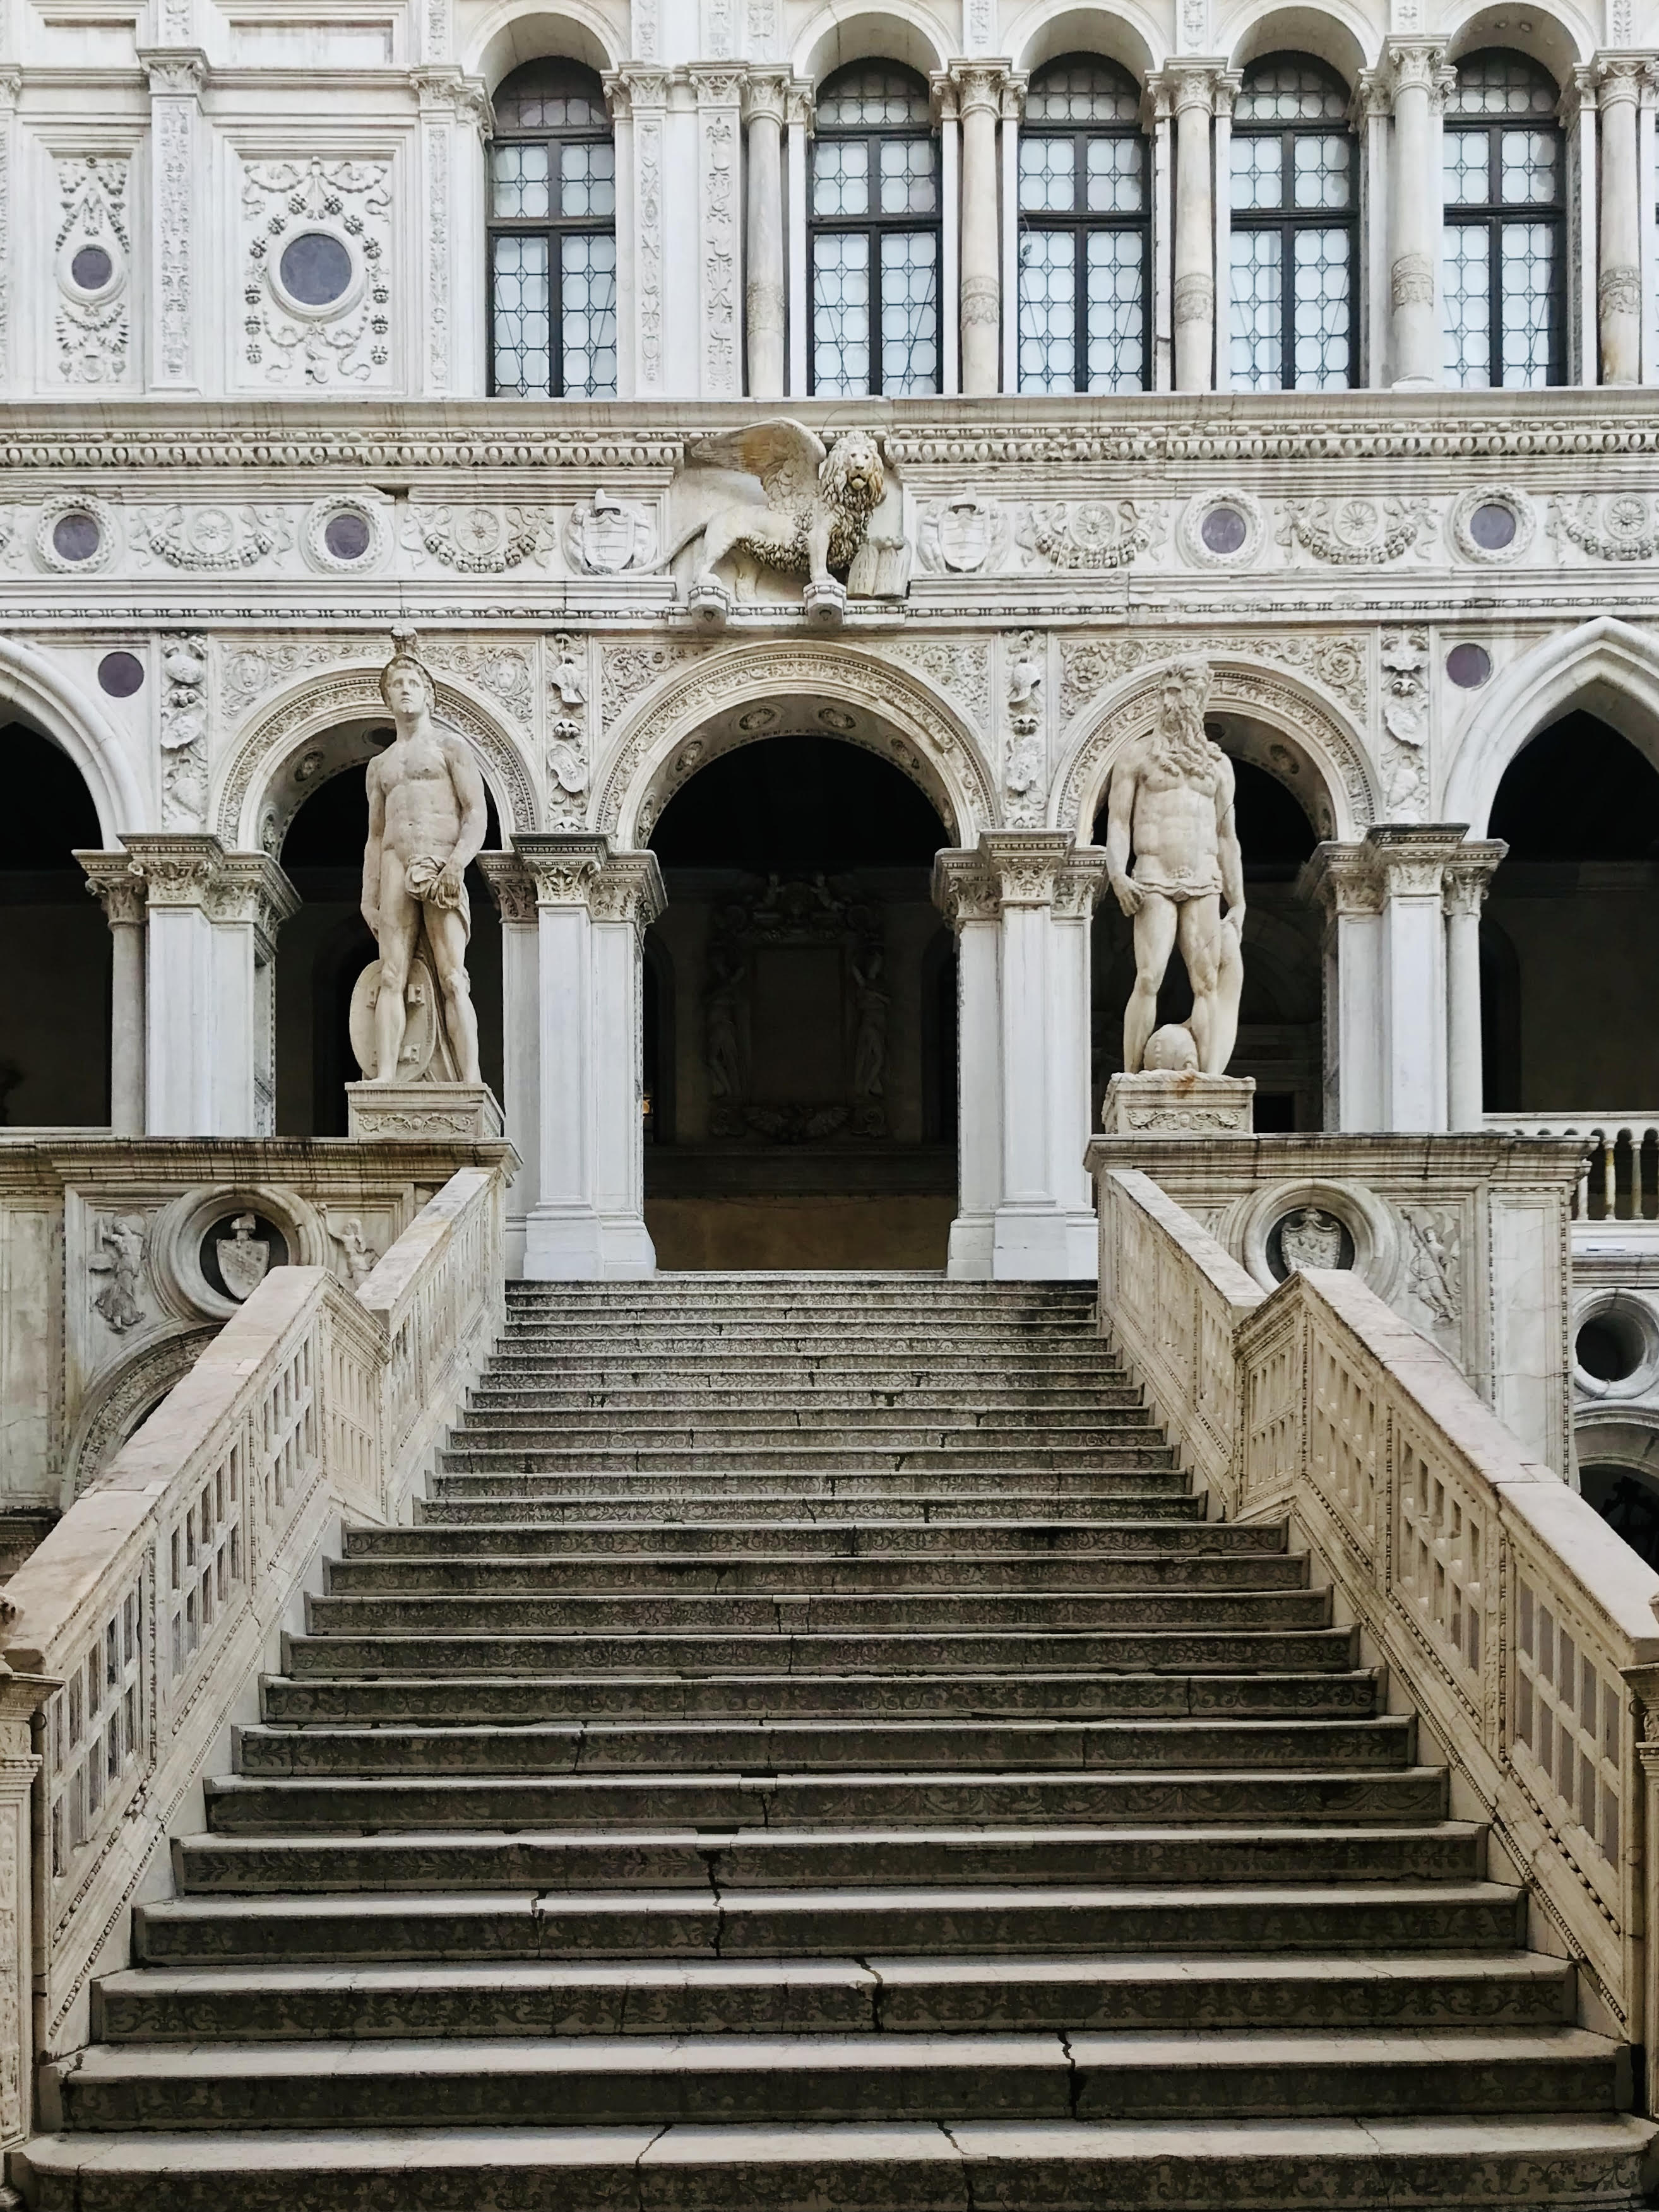 Let's discover Venice, tailored tour with a local guide and art historian